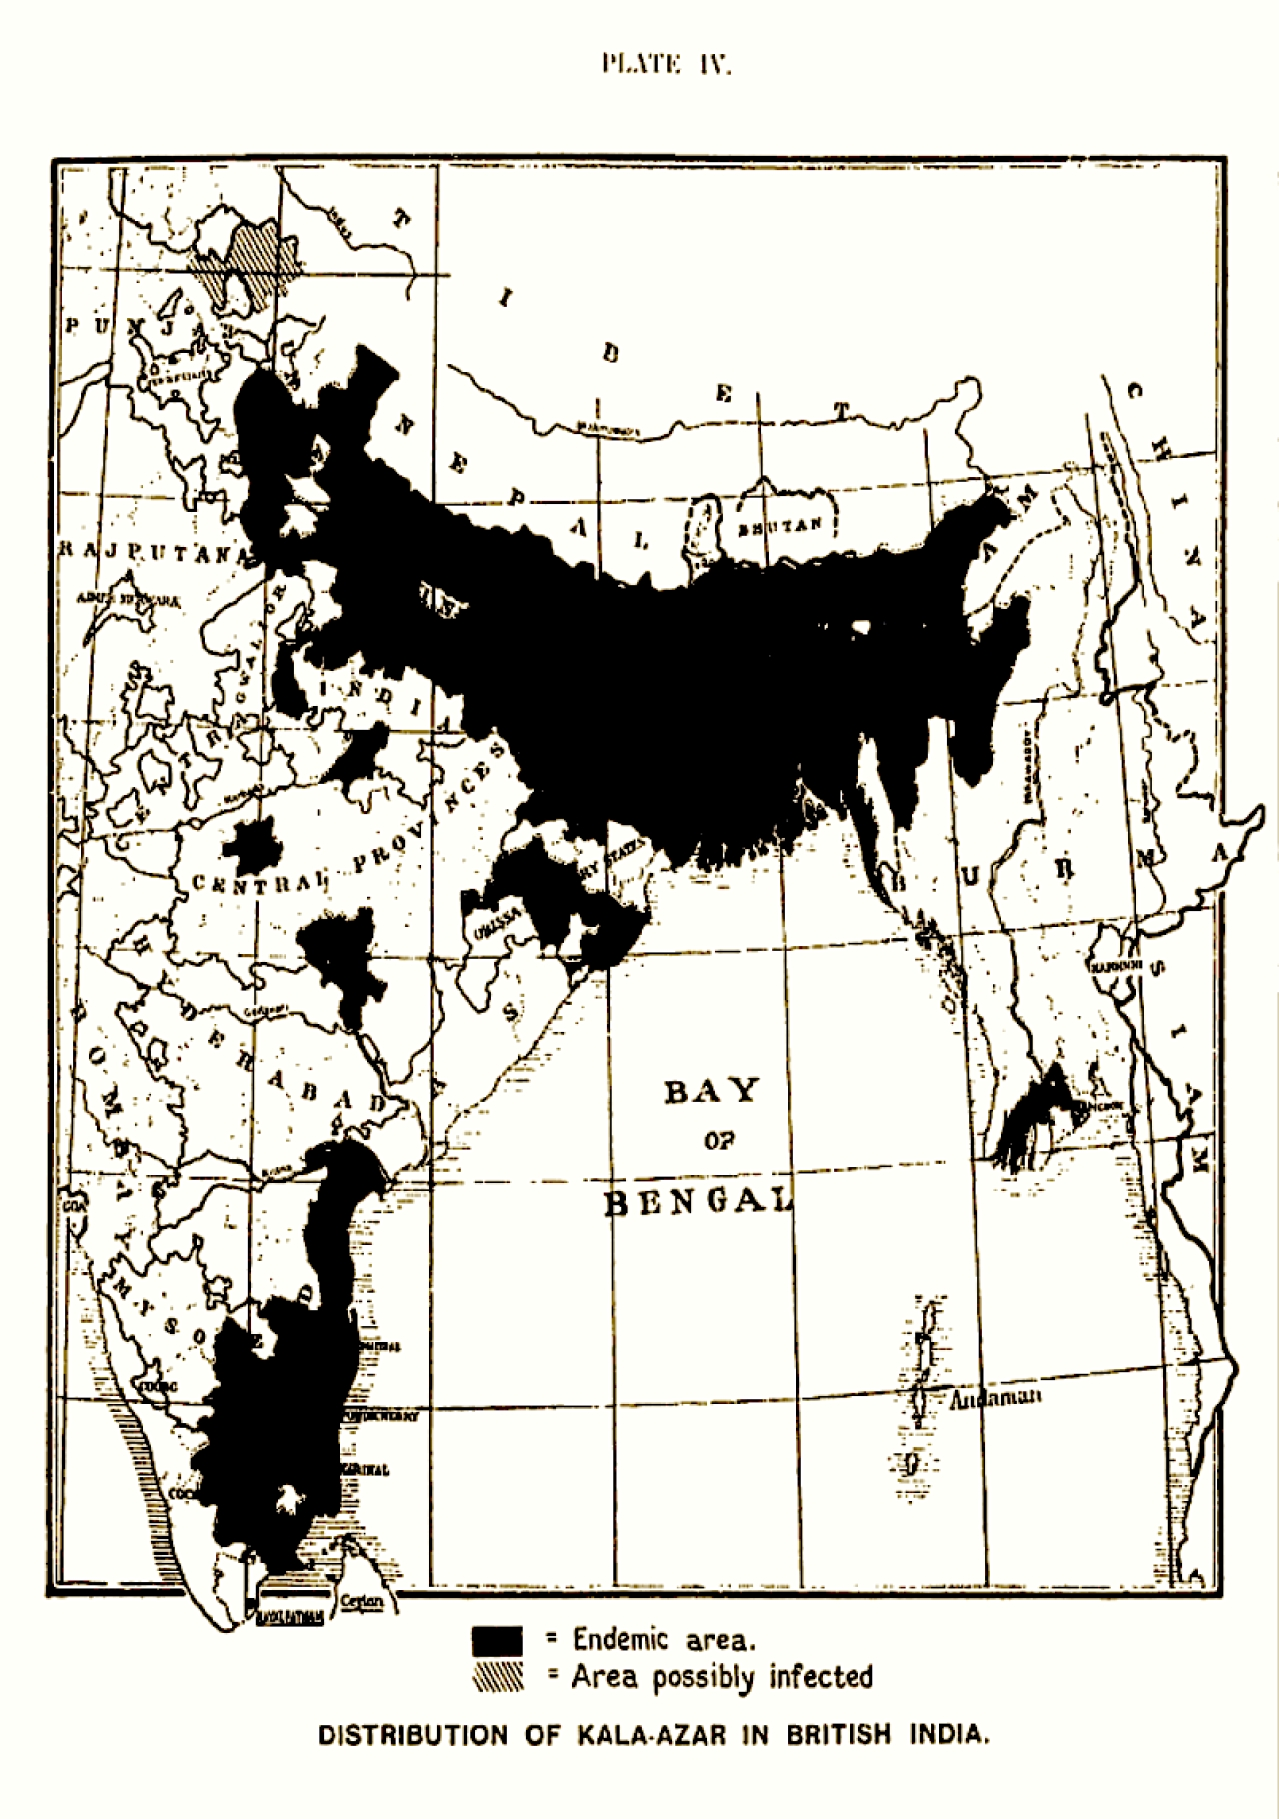 Figure 1. Distribution of kala-azar in British India (From 'A Treatise on Kala-azar', by Upendranath Brahmachari, John Bale, Sons and Danielson Limited, 1928)